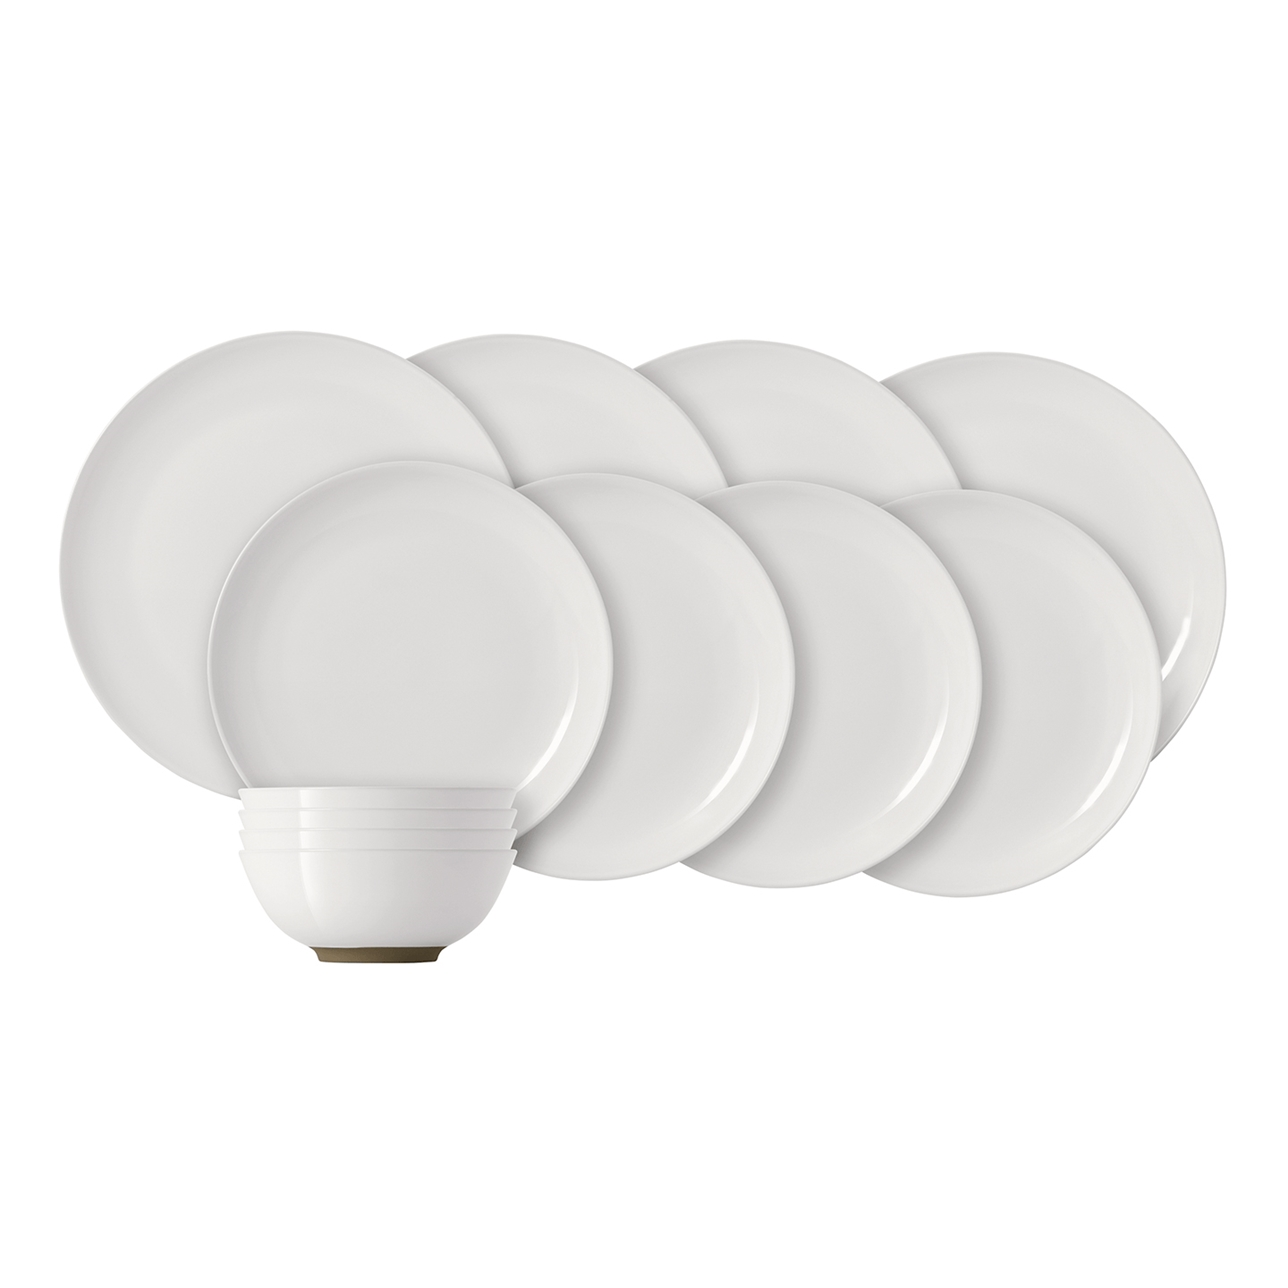 Olio by Barber Osgerby White 12-Piece Set